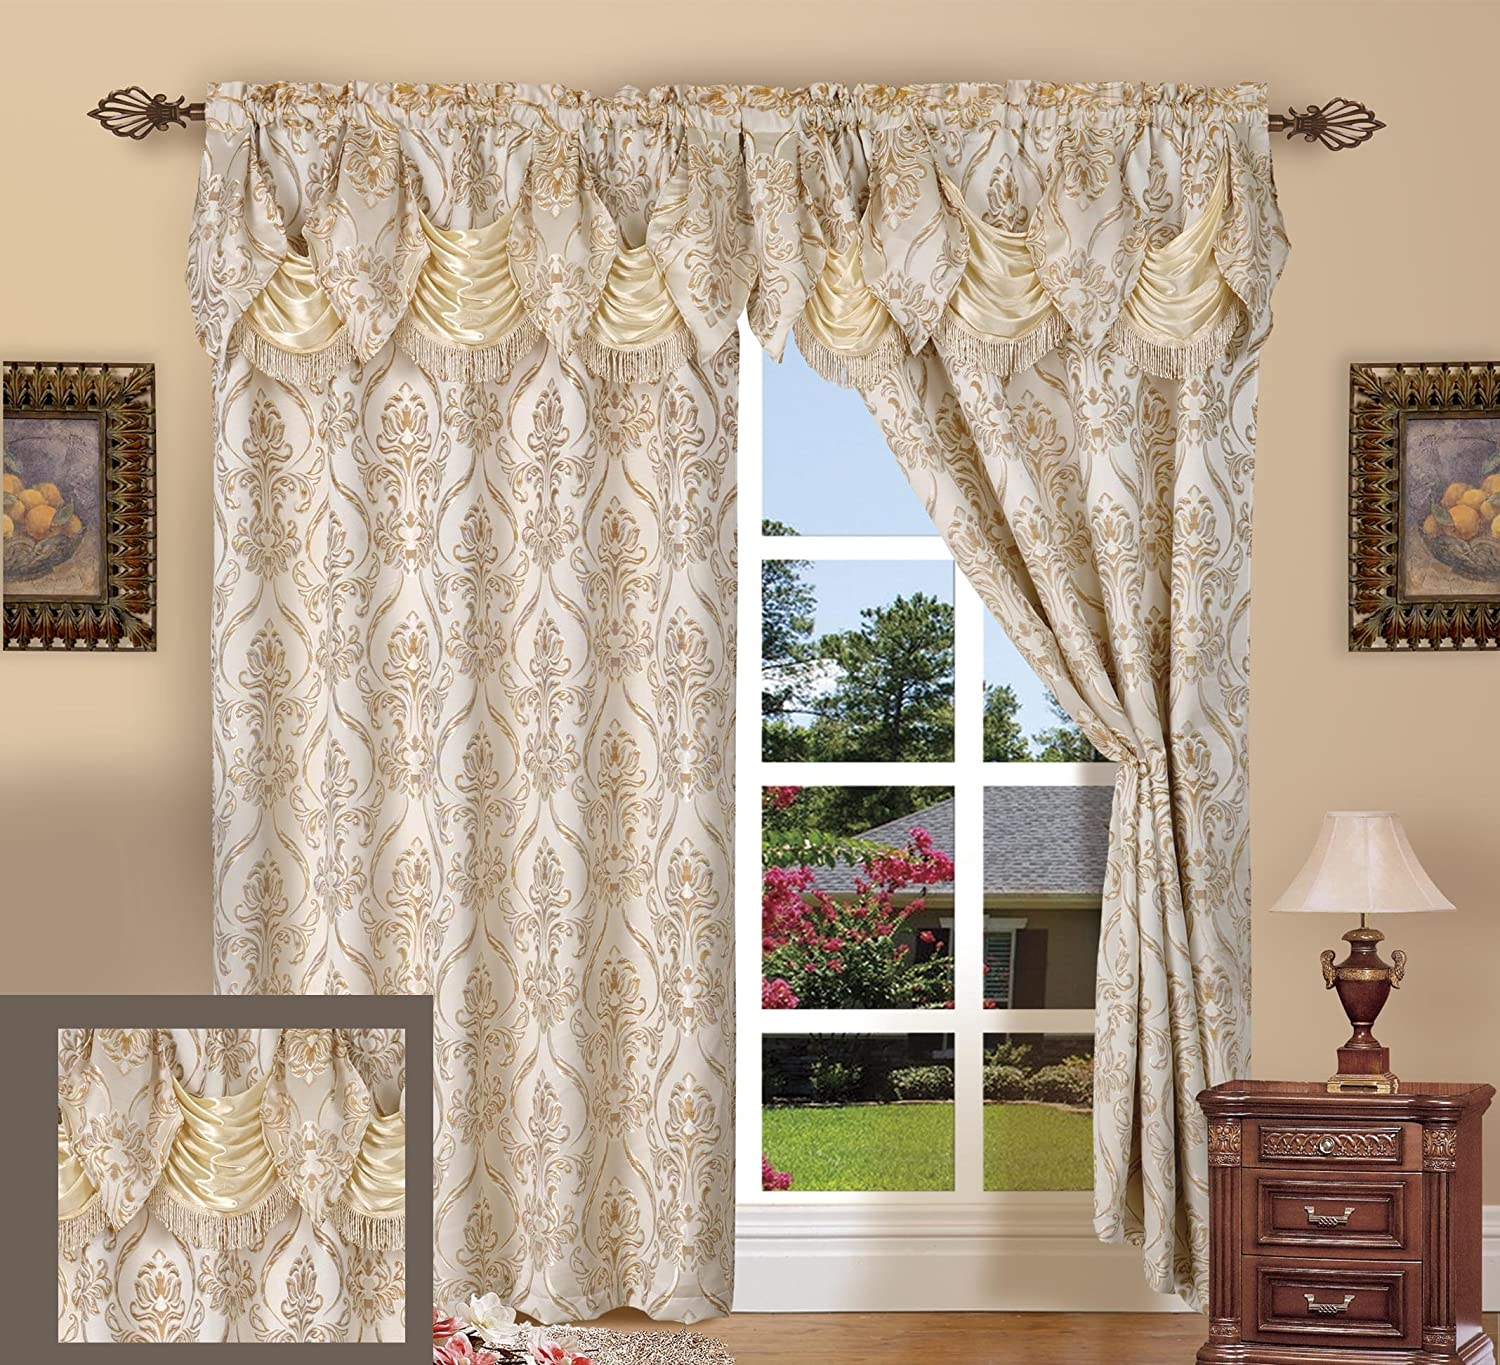 Elegance Linen Luxury Jacquard Curtain Panel Set with Attached Valance 55